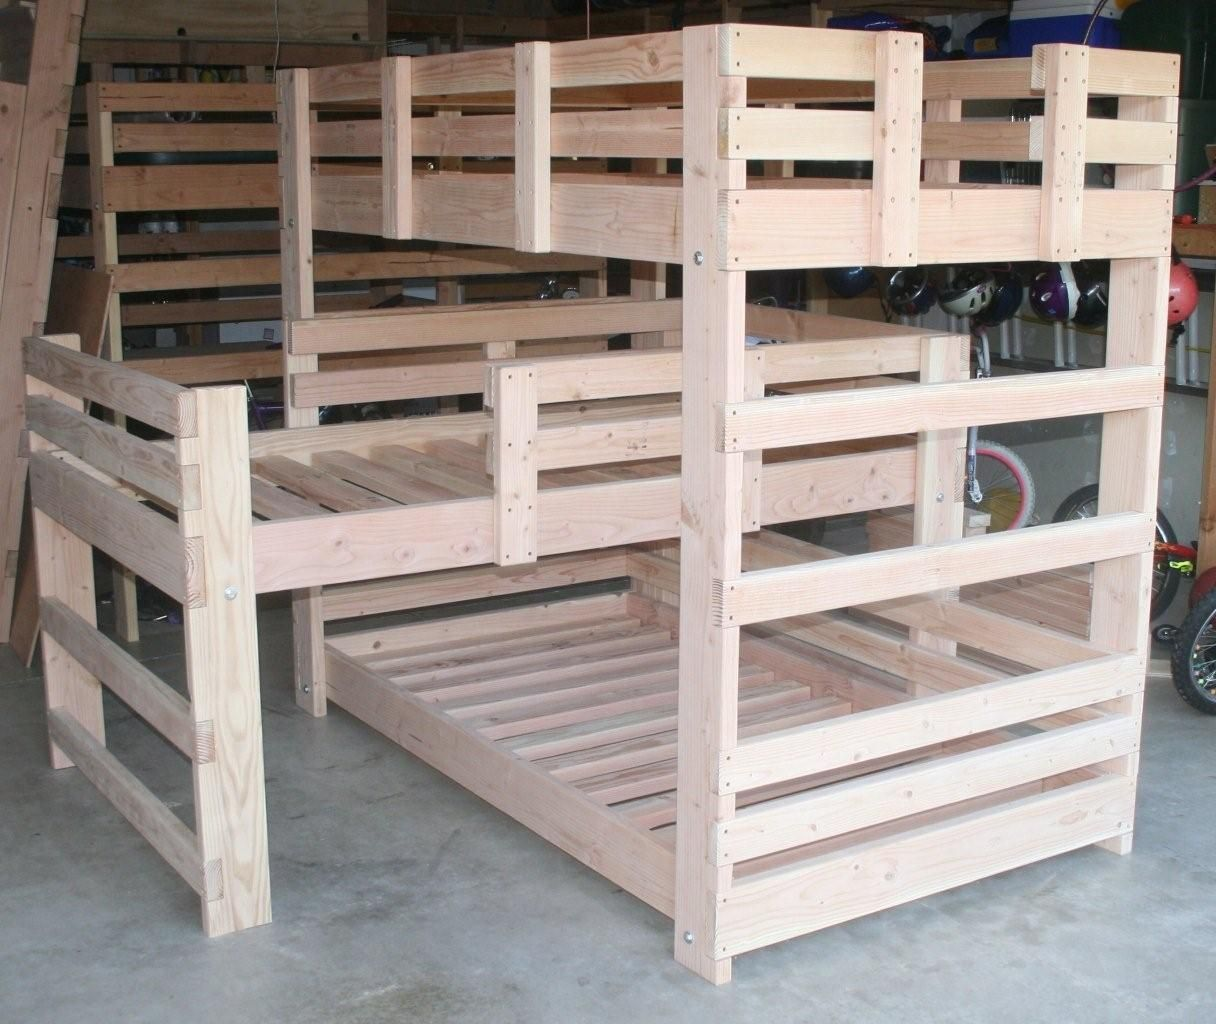 5 wonderful ideas of triple bunk beds for your kids on wonderful ideas of bunk beds for your kids bedroom id=45721